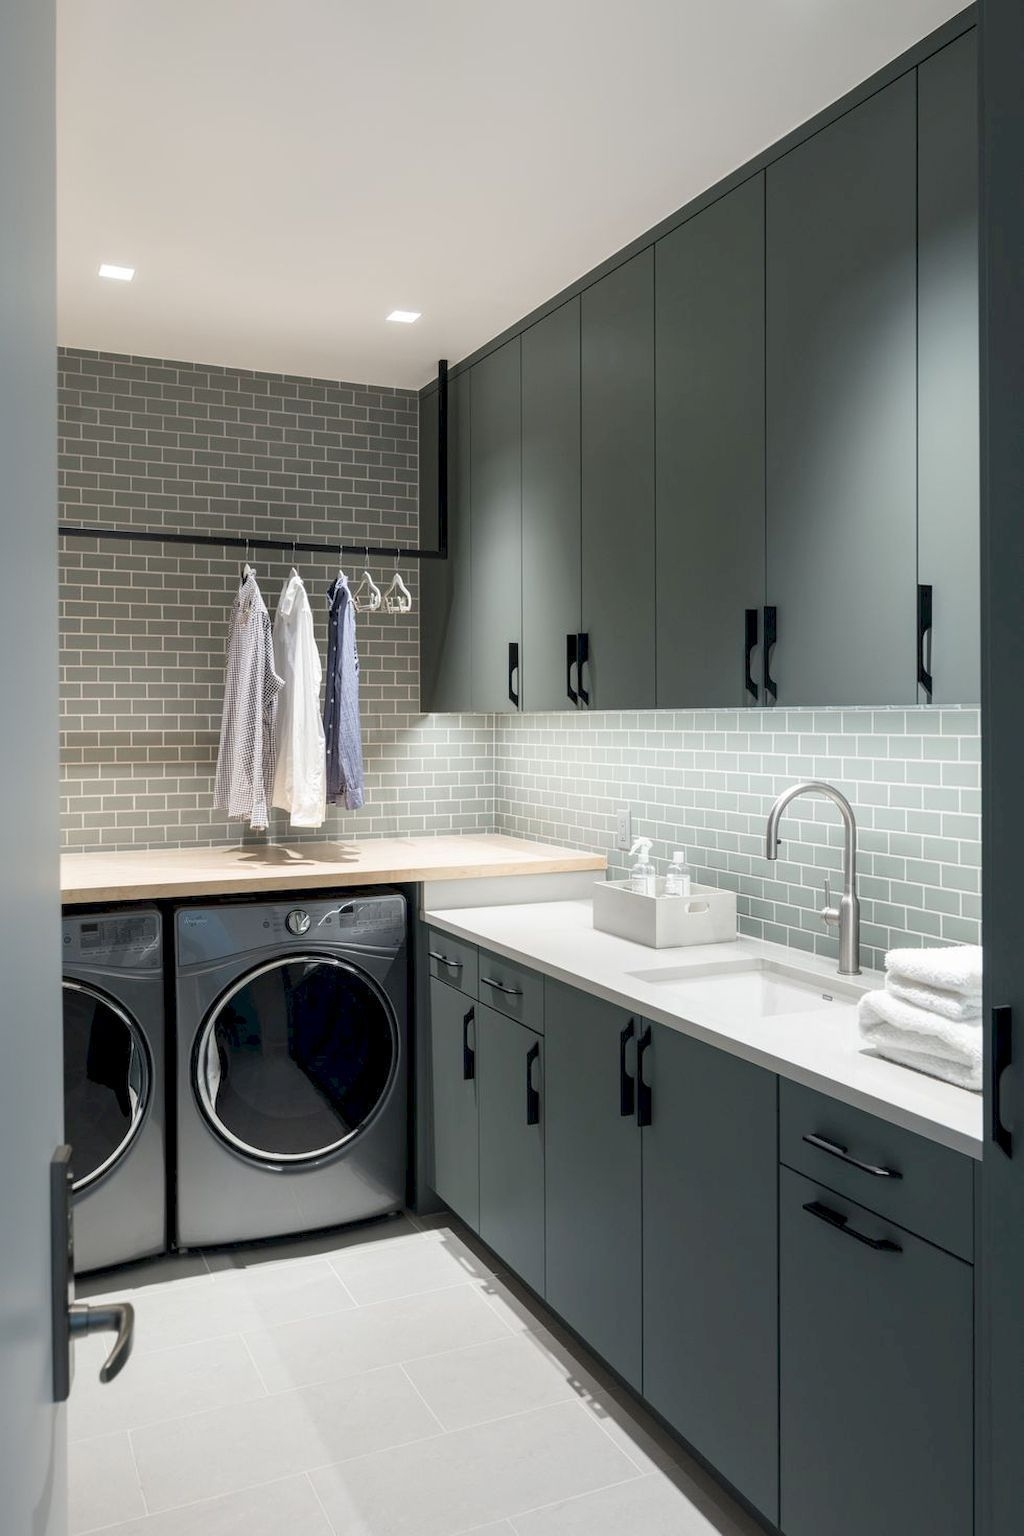 Cute Laundry Room Storage Shelves Ideas To Consider01